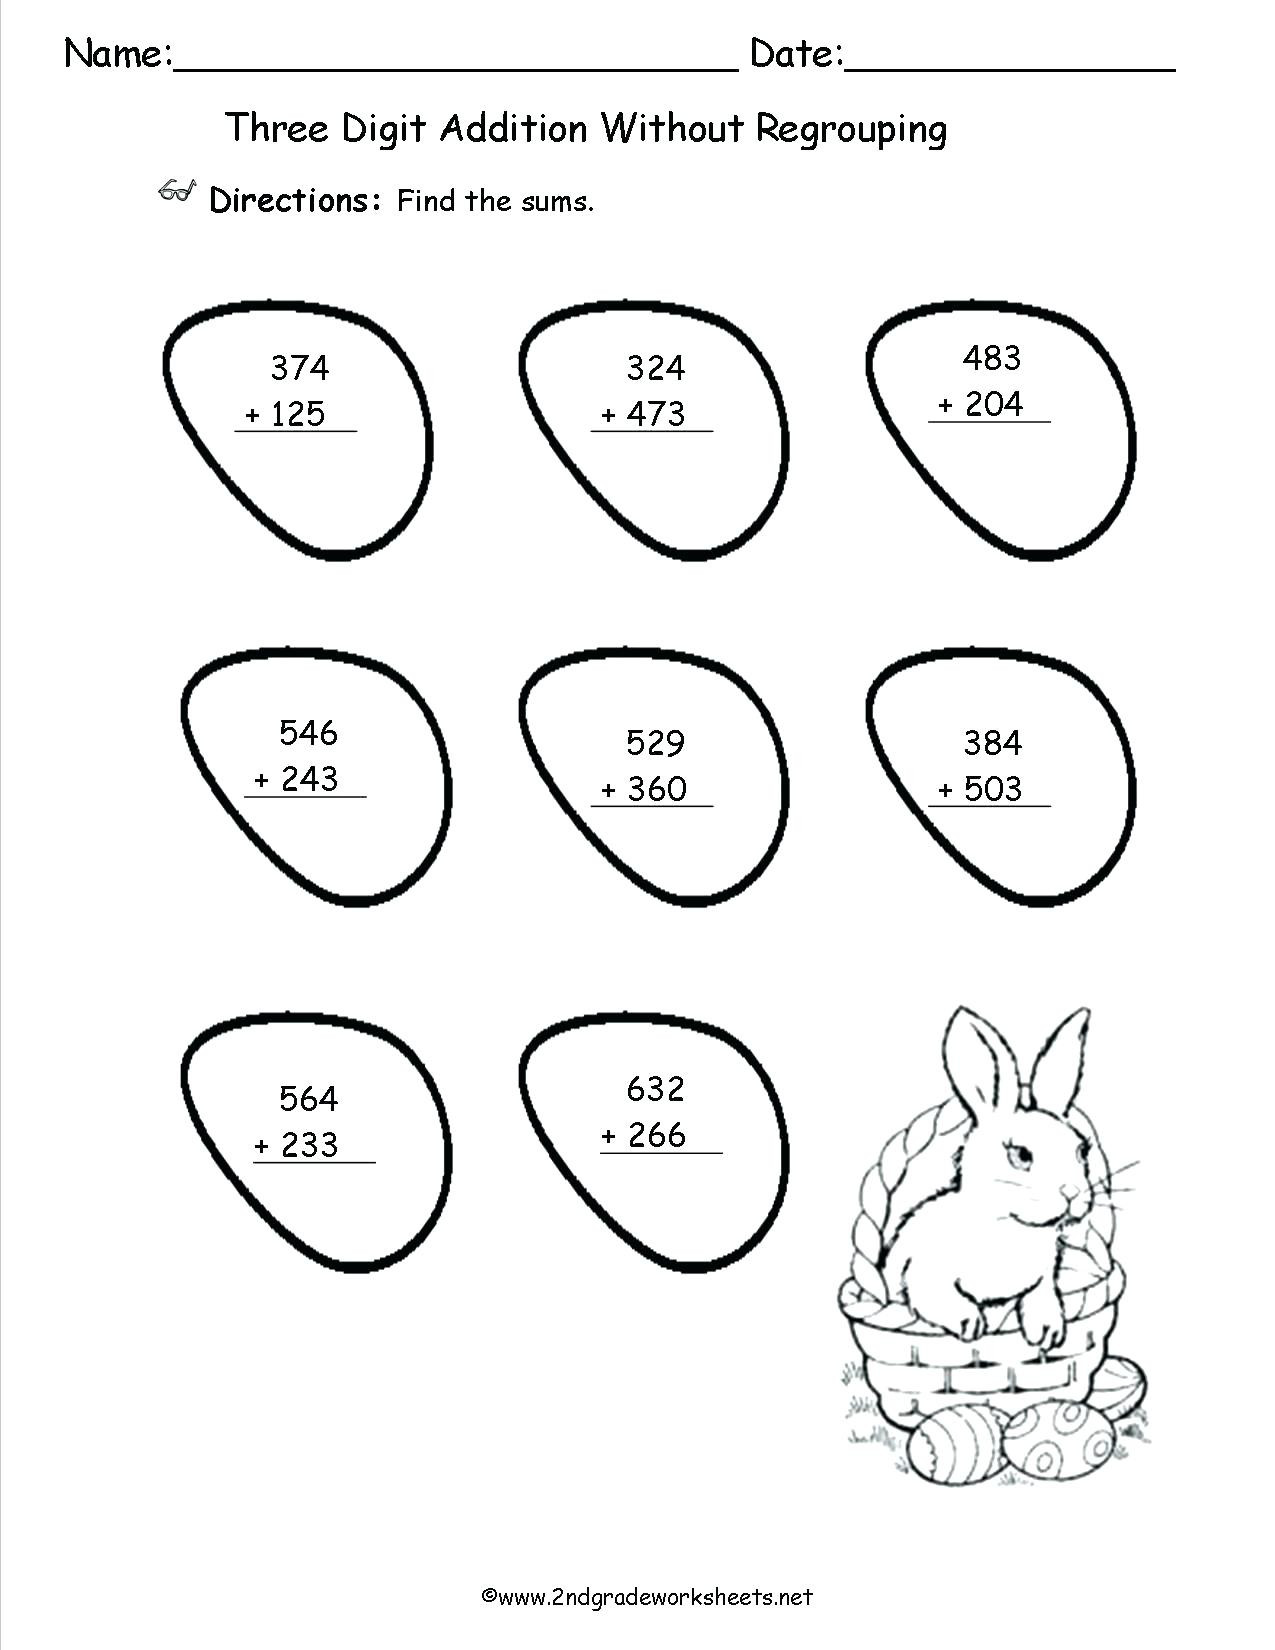 Double Consonant Worksheets 2nd Grade Worksheet Ideas Summer Fun Worksheets for 3rd Grade Double